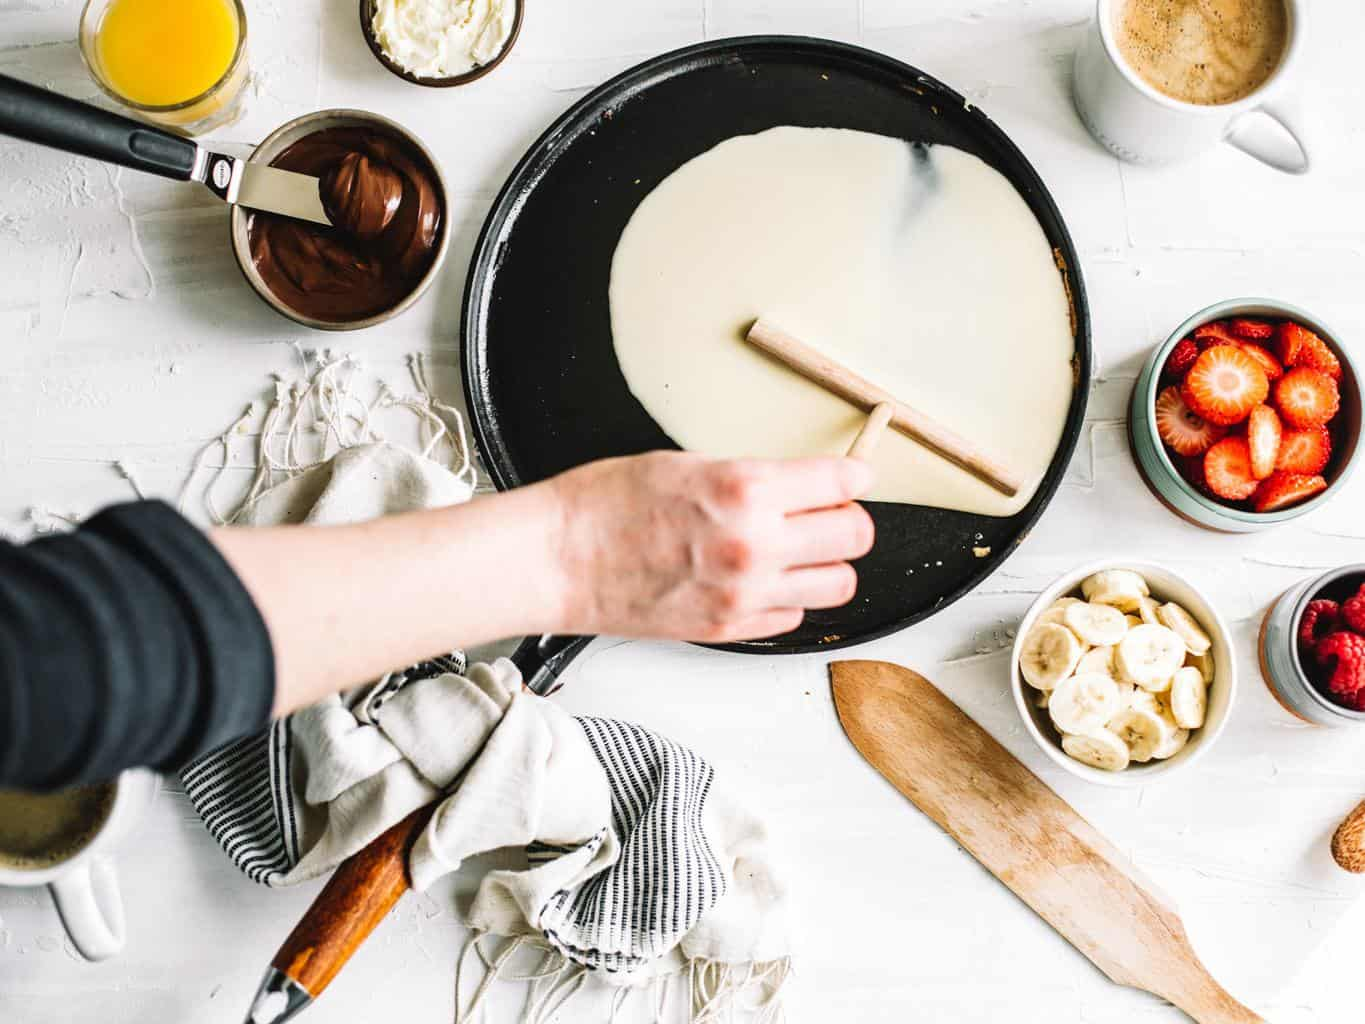 Crepe batter being spread out on a skillet.